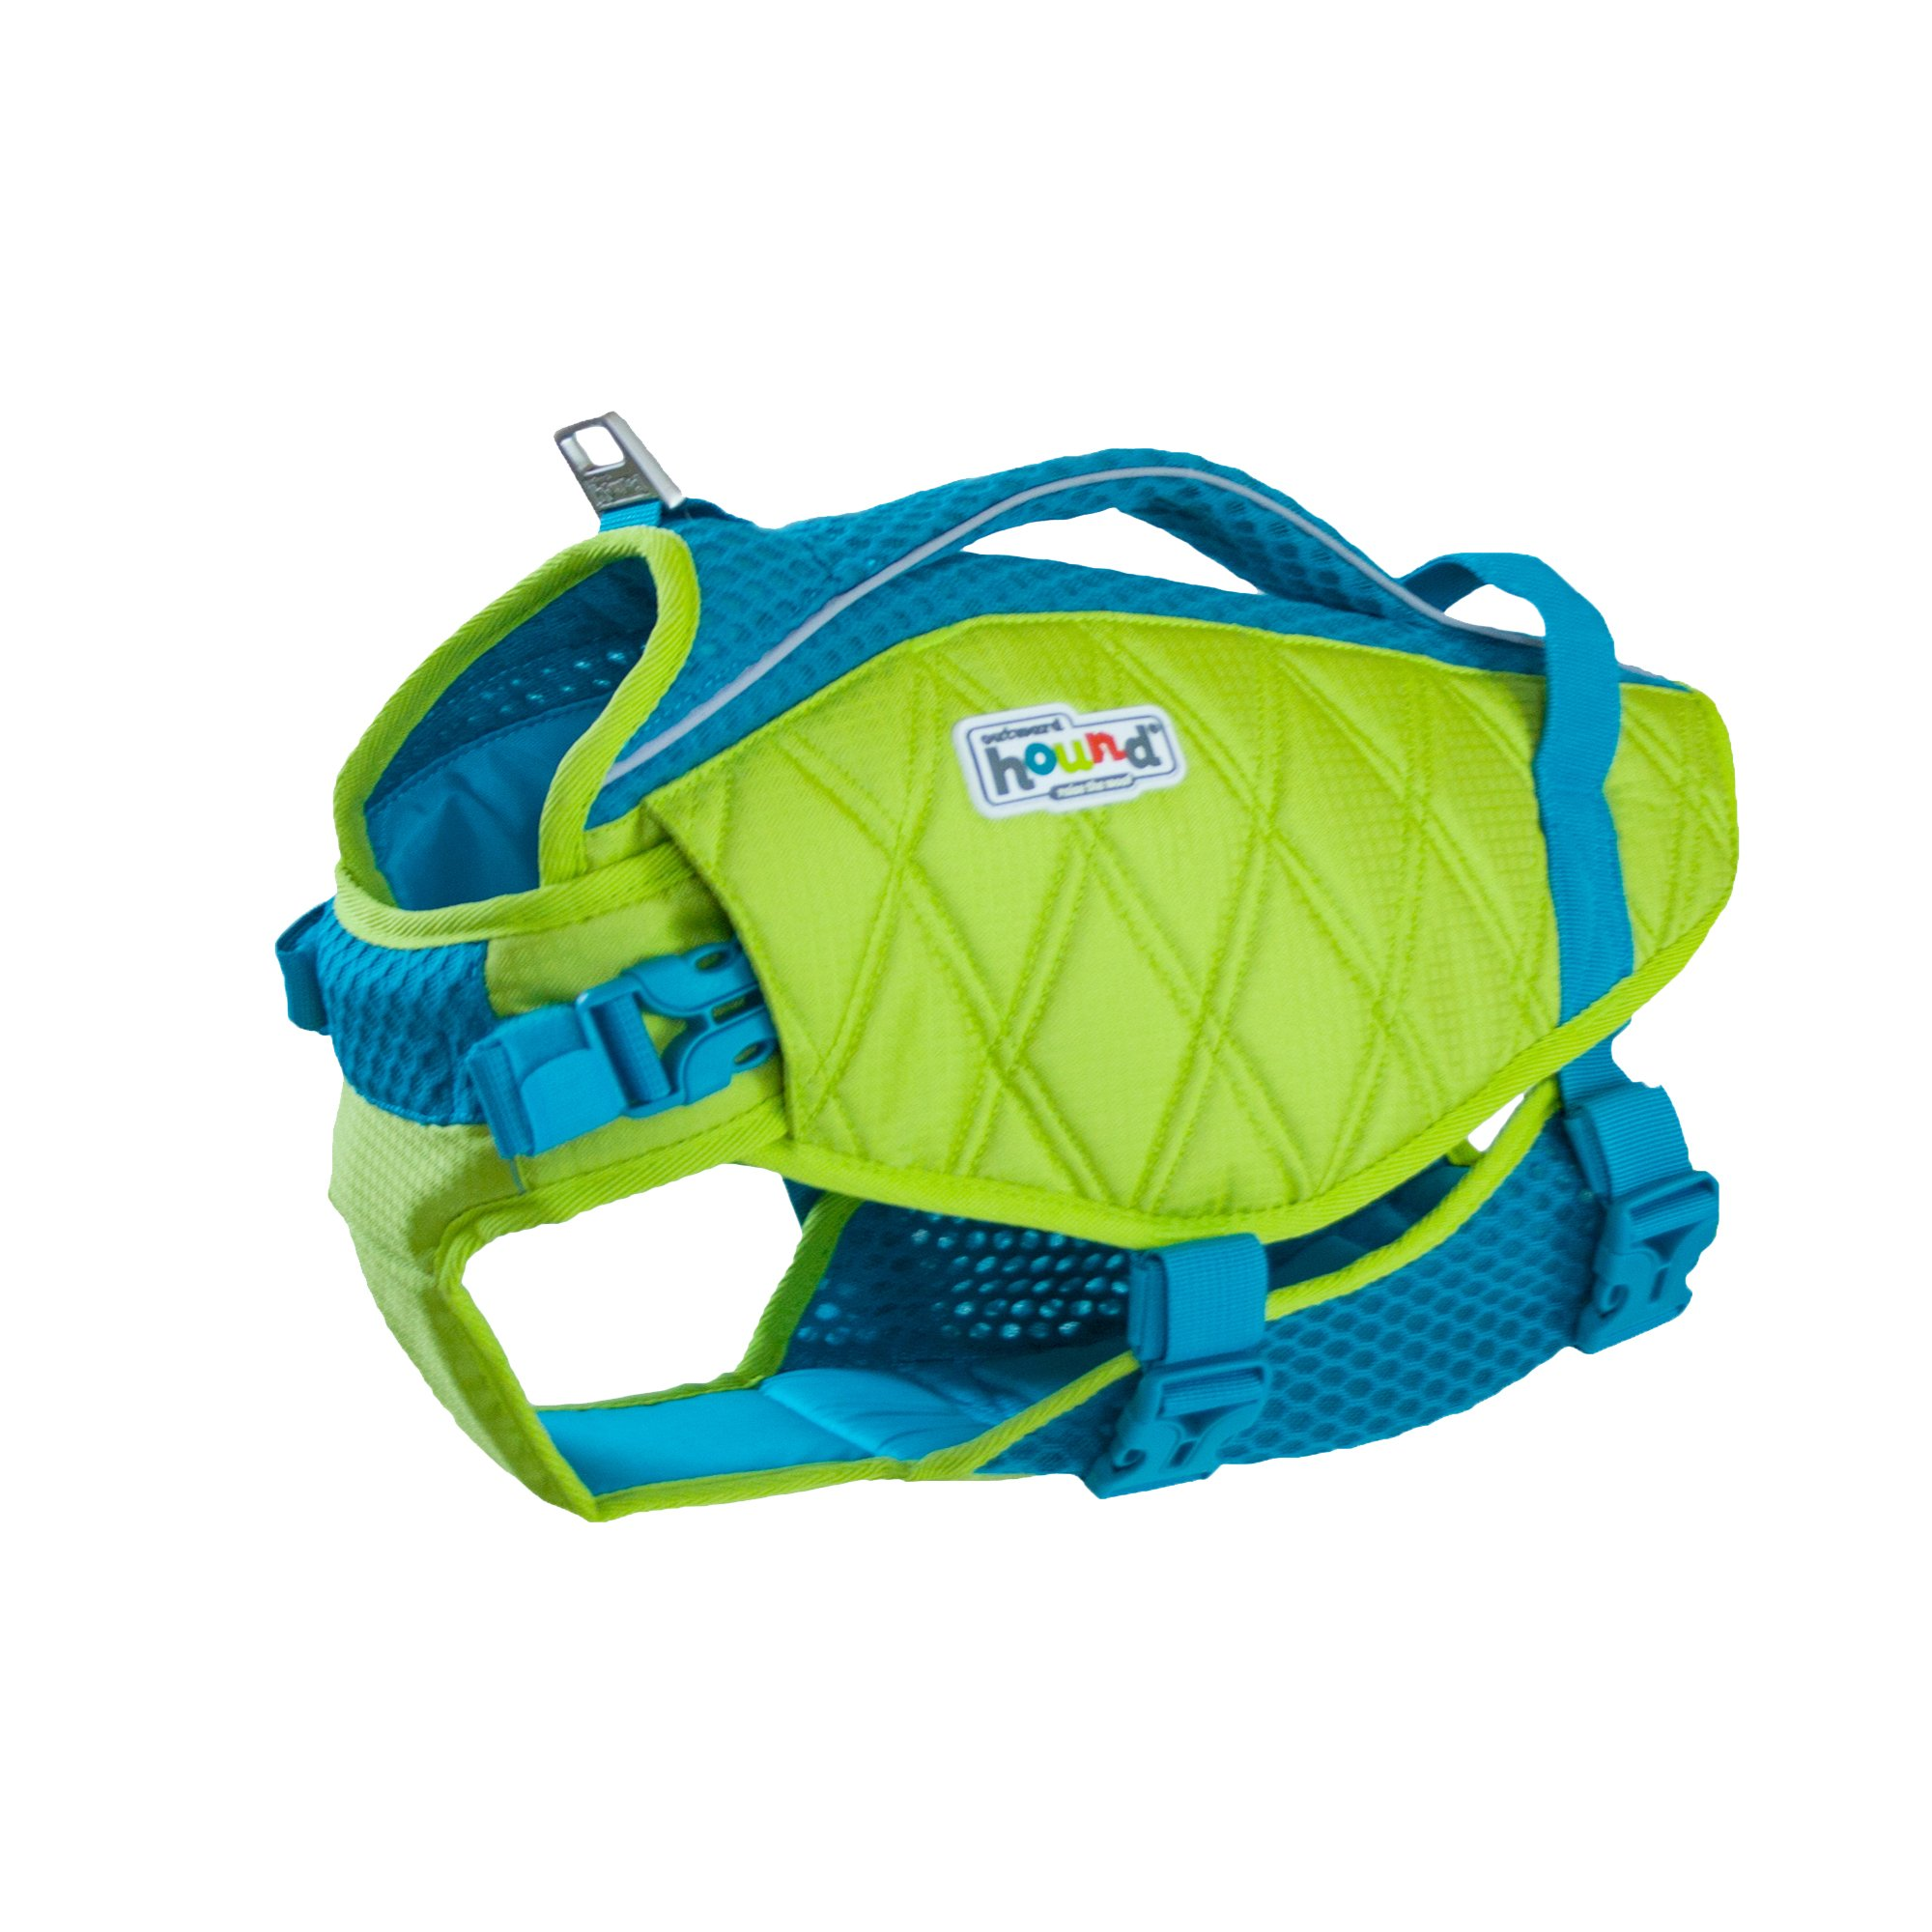 Dog Life Jacket Standley Sport High Performance Life Jacket for Dogs by Outward Hound, X-Large